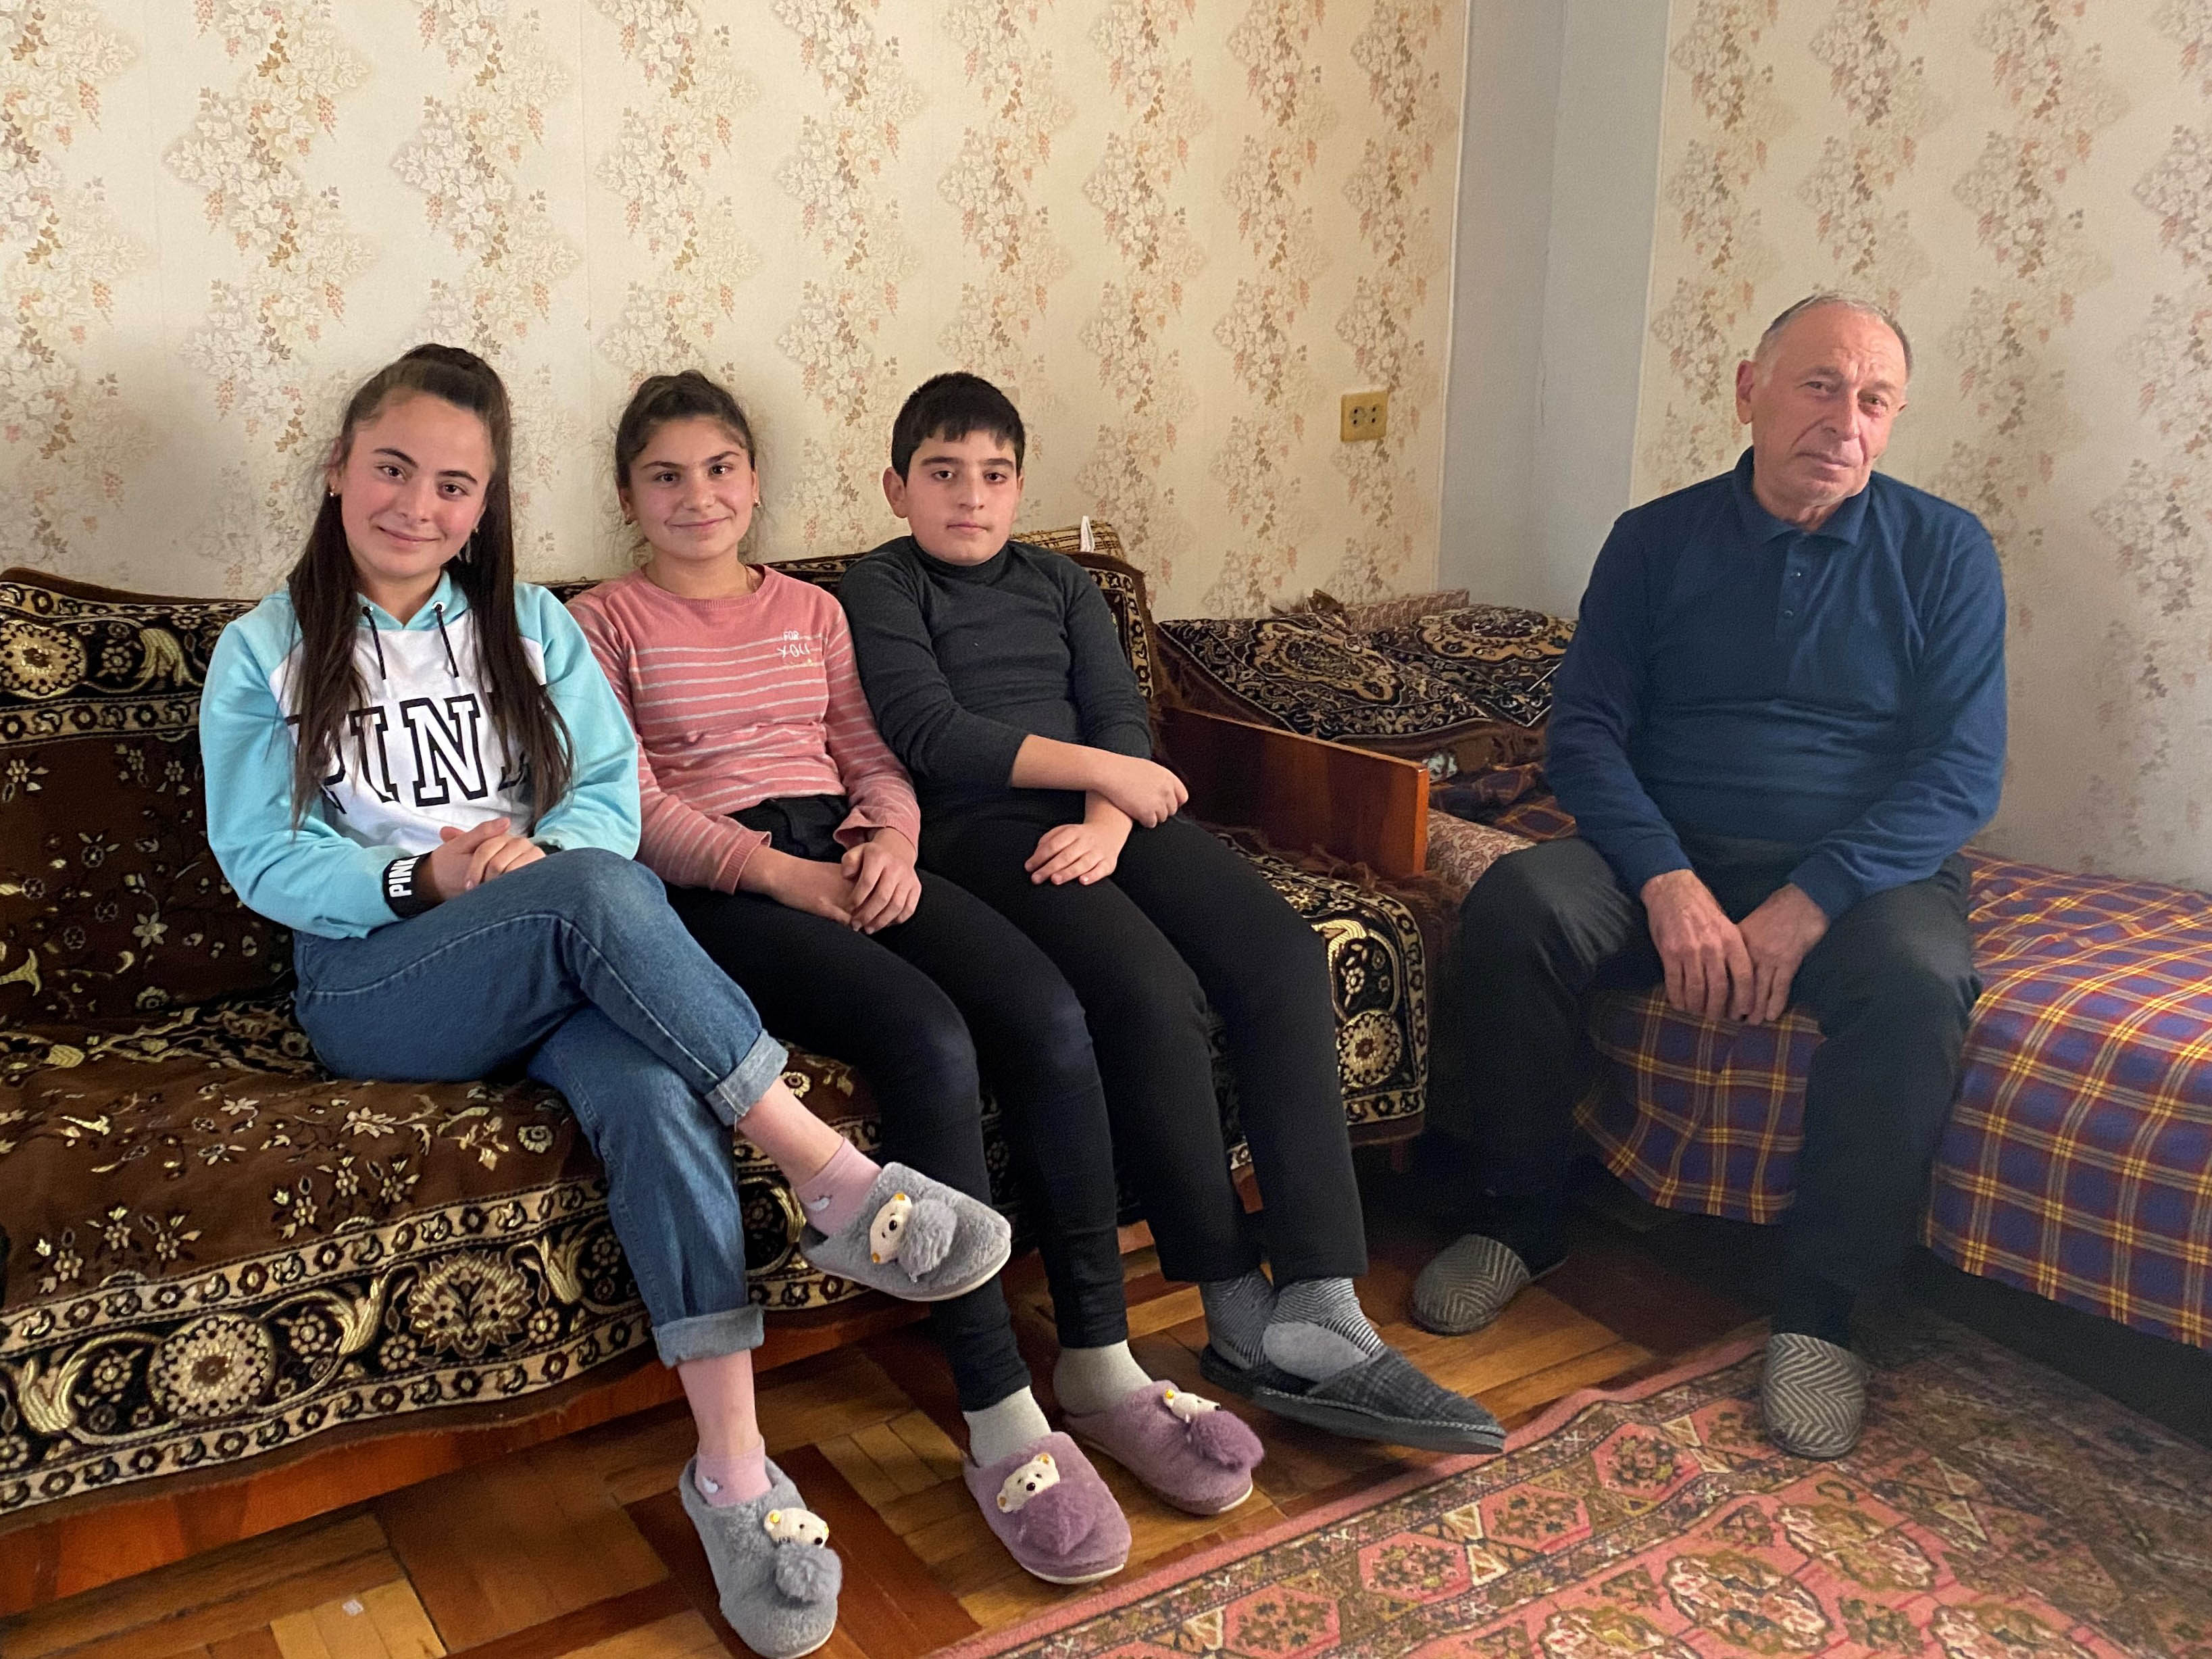 Zhora Poghosyan with his grandchildren. Photo: Dvin Titizian/OC Media.